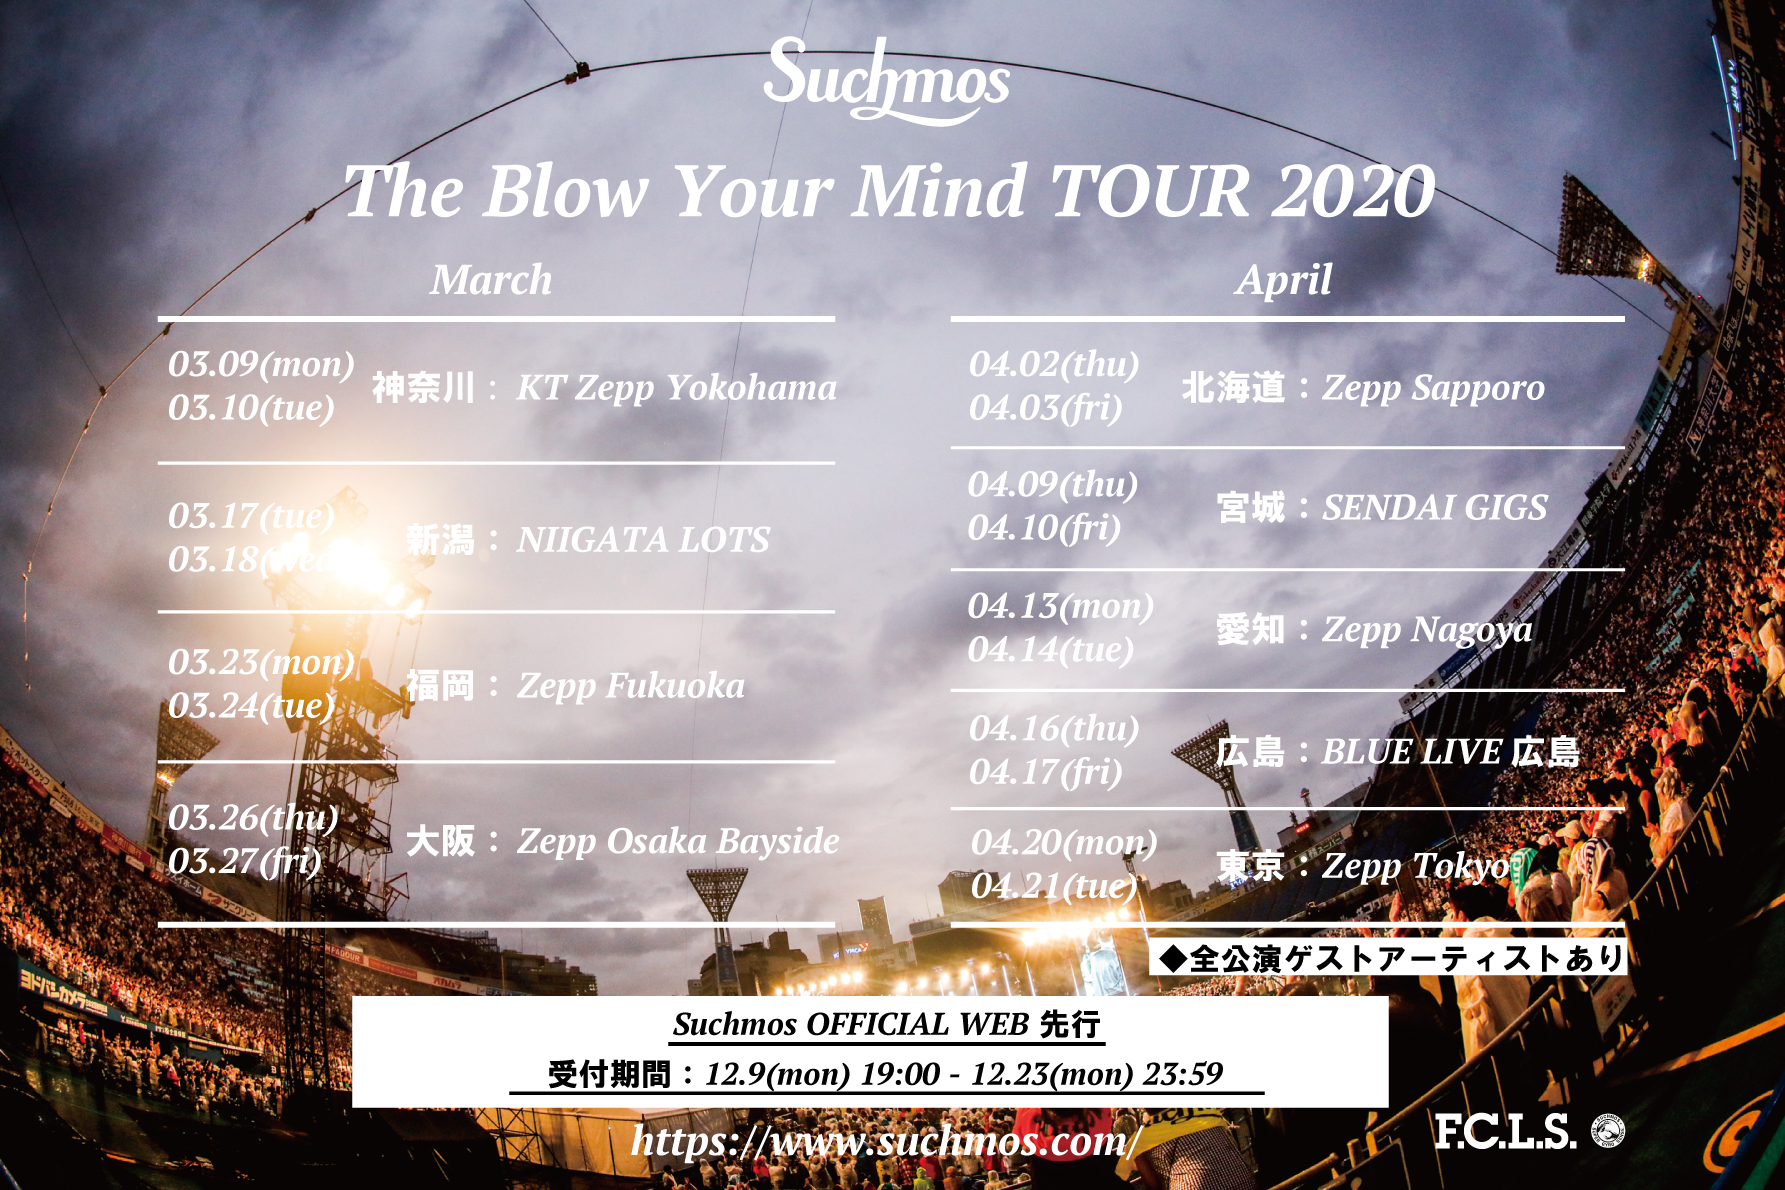 『Suchmos The Blow Your Mind TOUR 2020』